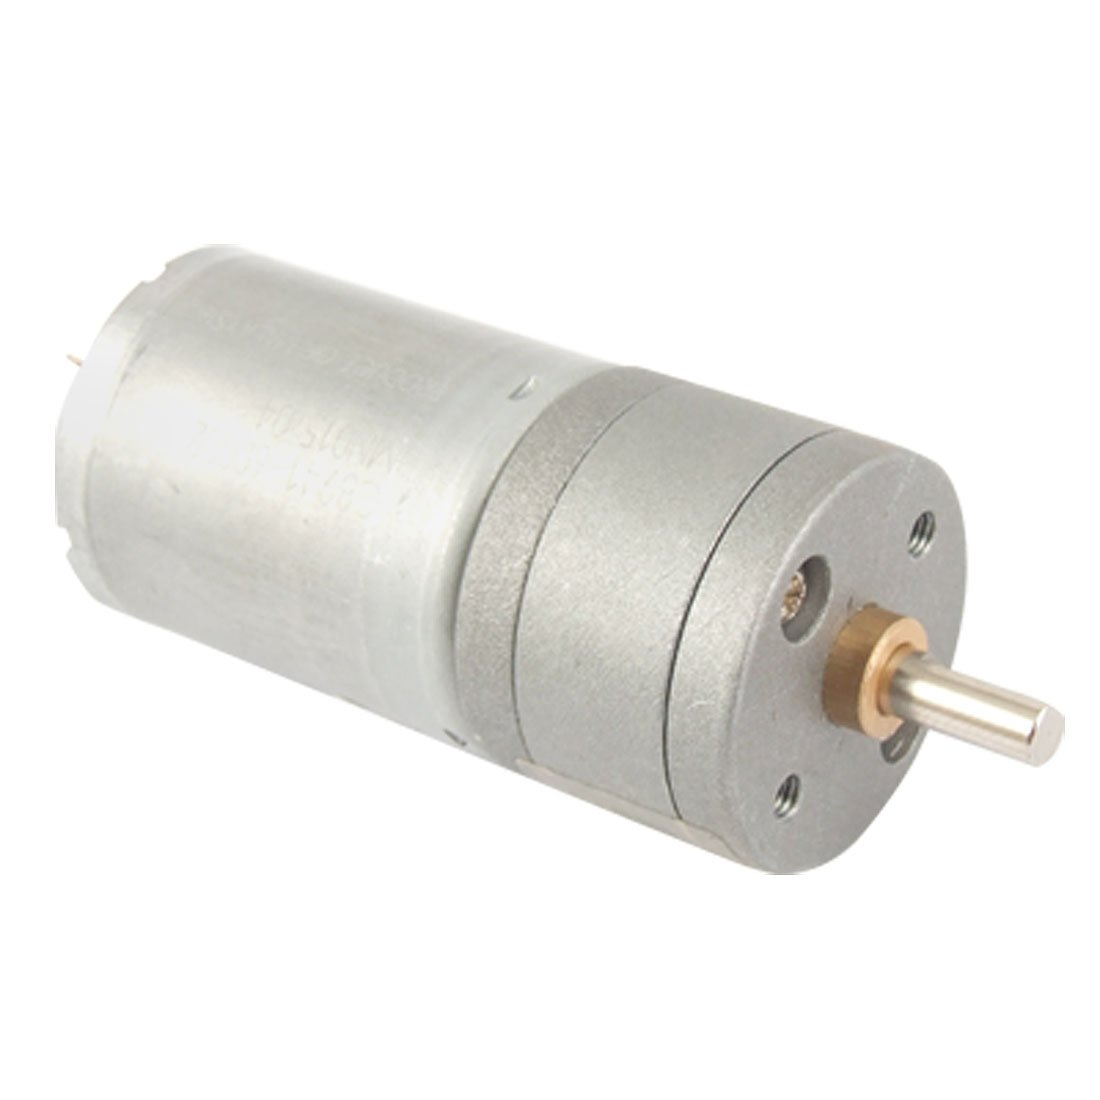 uxcell 12V 40-50mA 400RPM 4mm Shaft 25mm Diameter DC Geared Motor w Gearbox